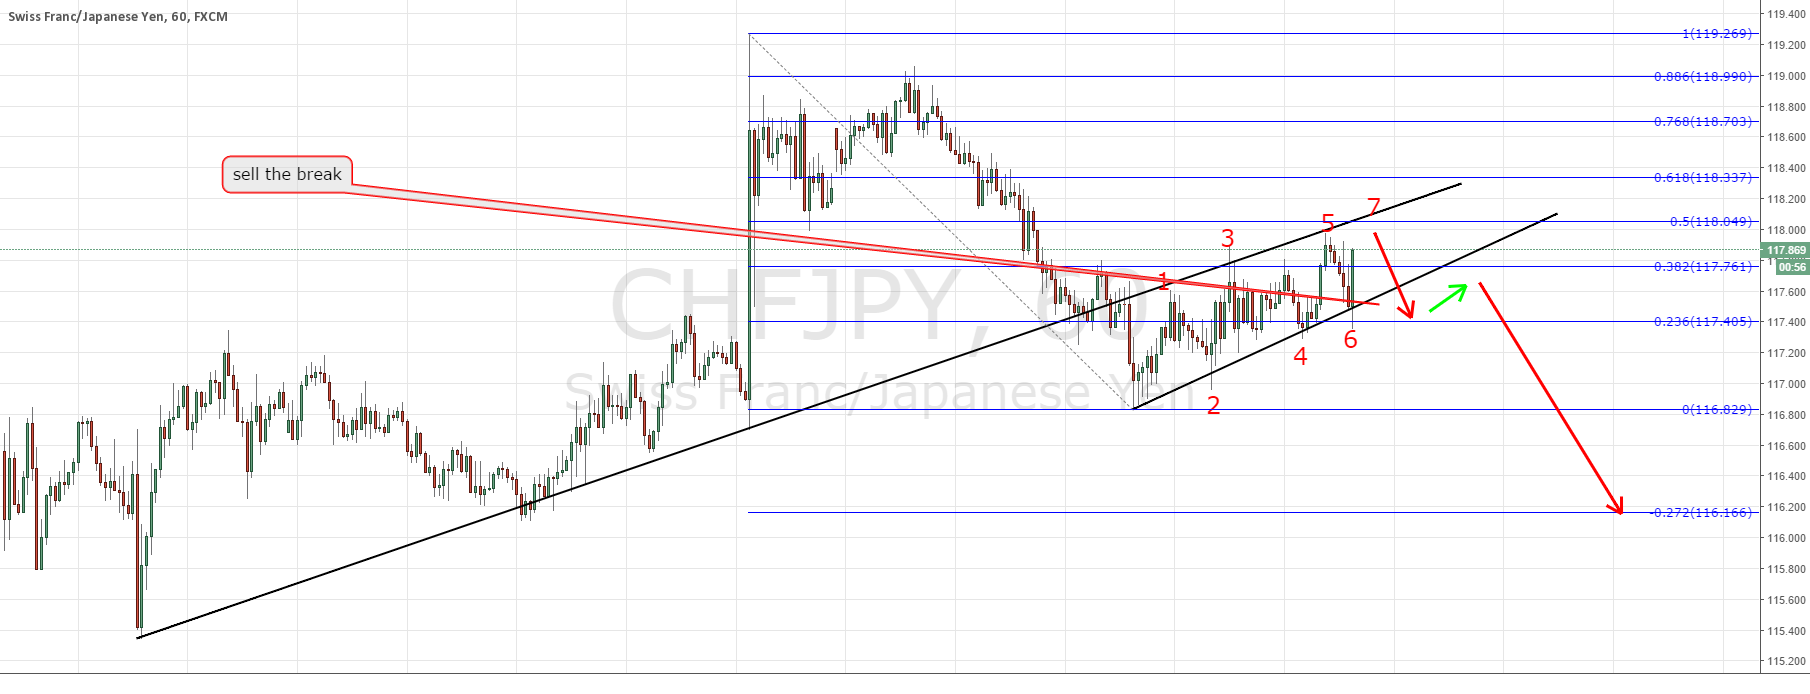 CHFJPY watch for perfect sell scenario